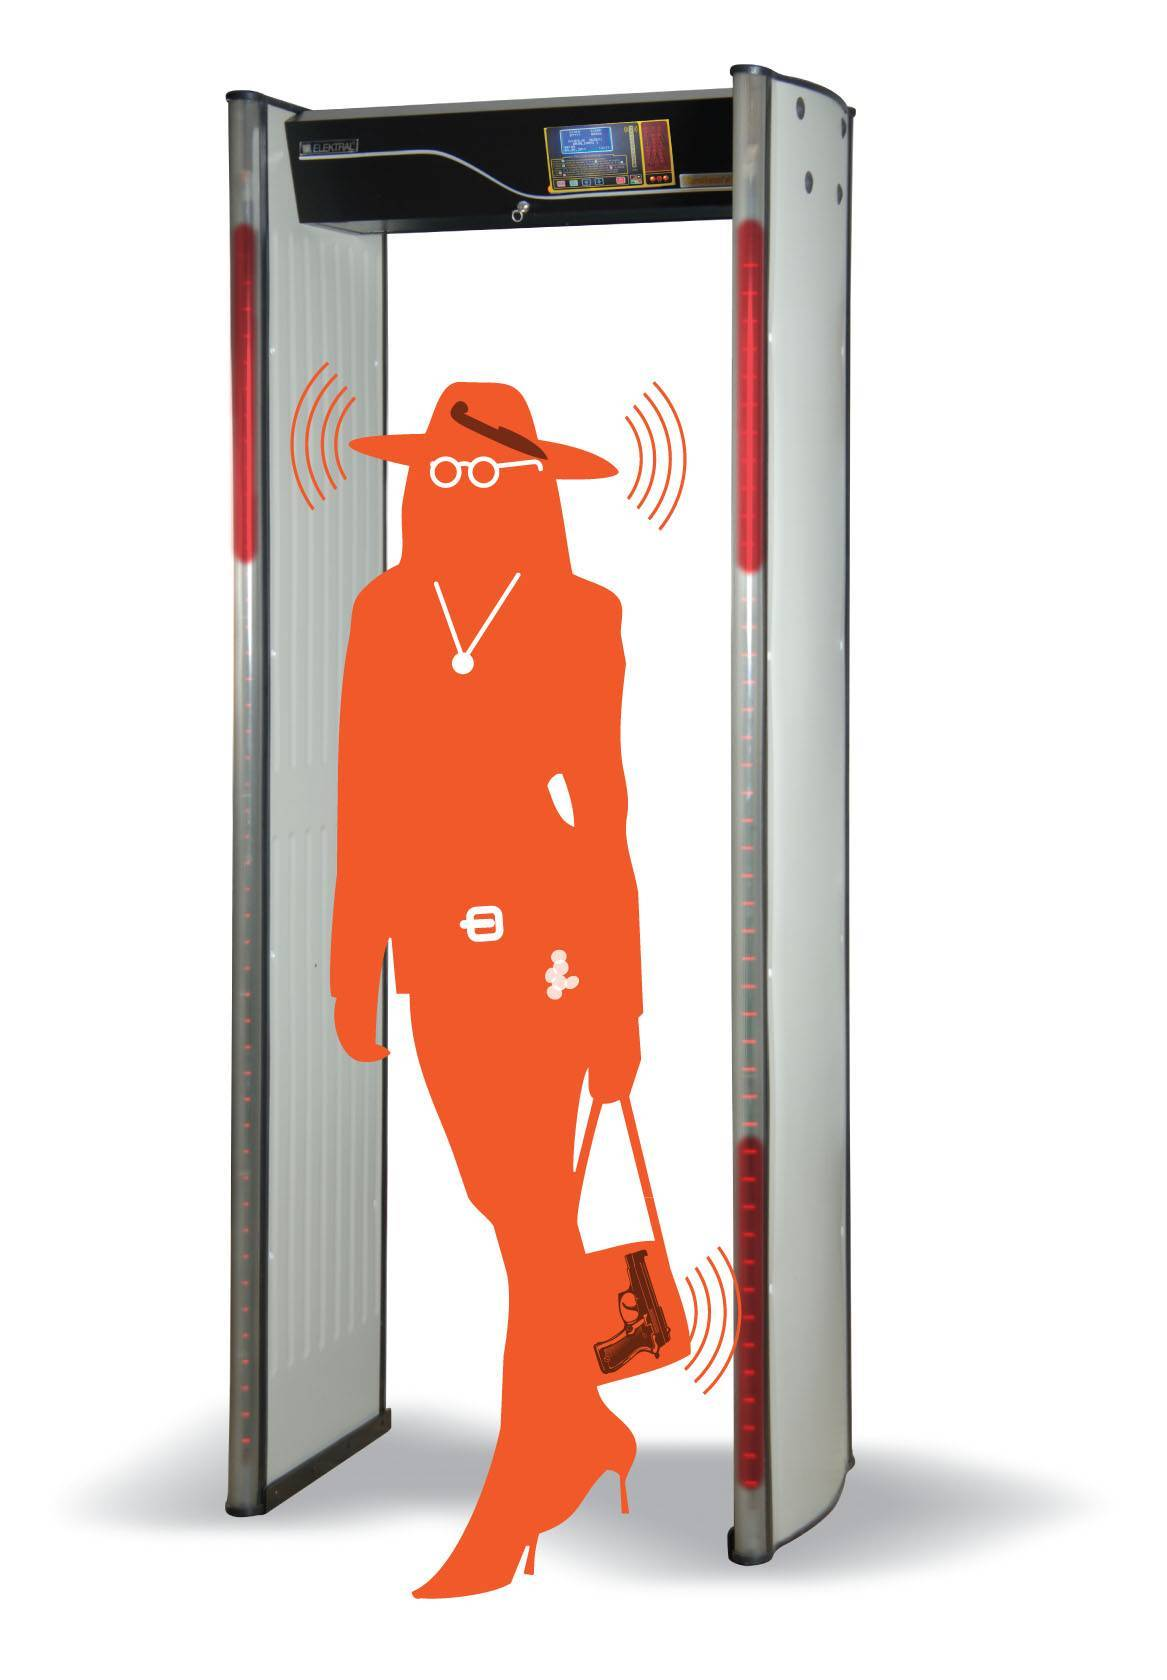 Metal Detectors, Walk Through Metal Detectors, Security products, safety products